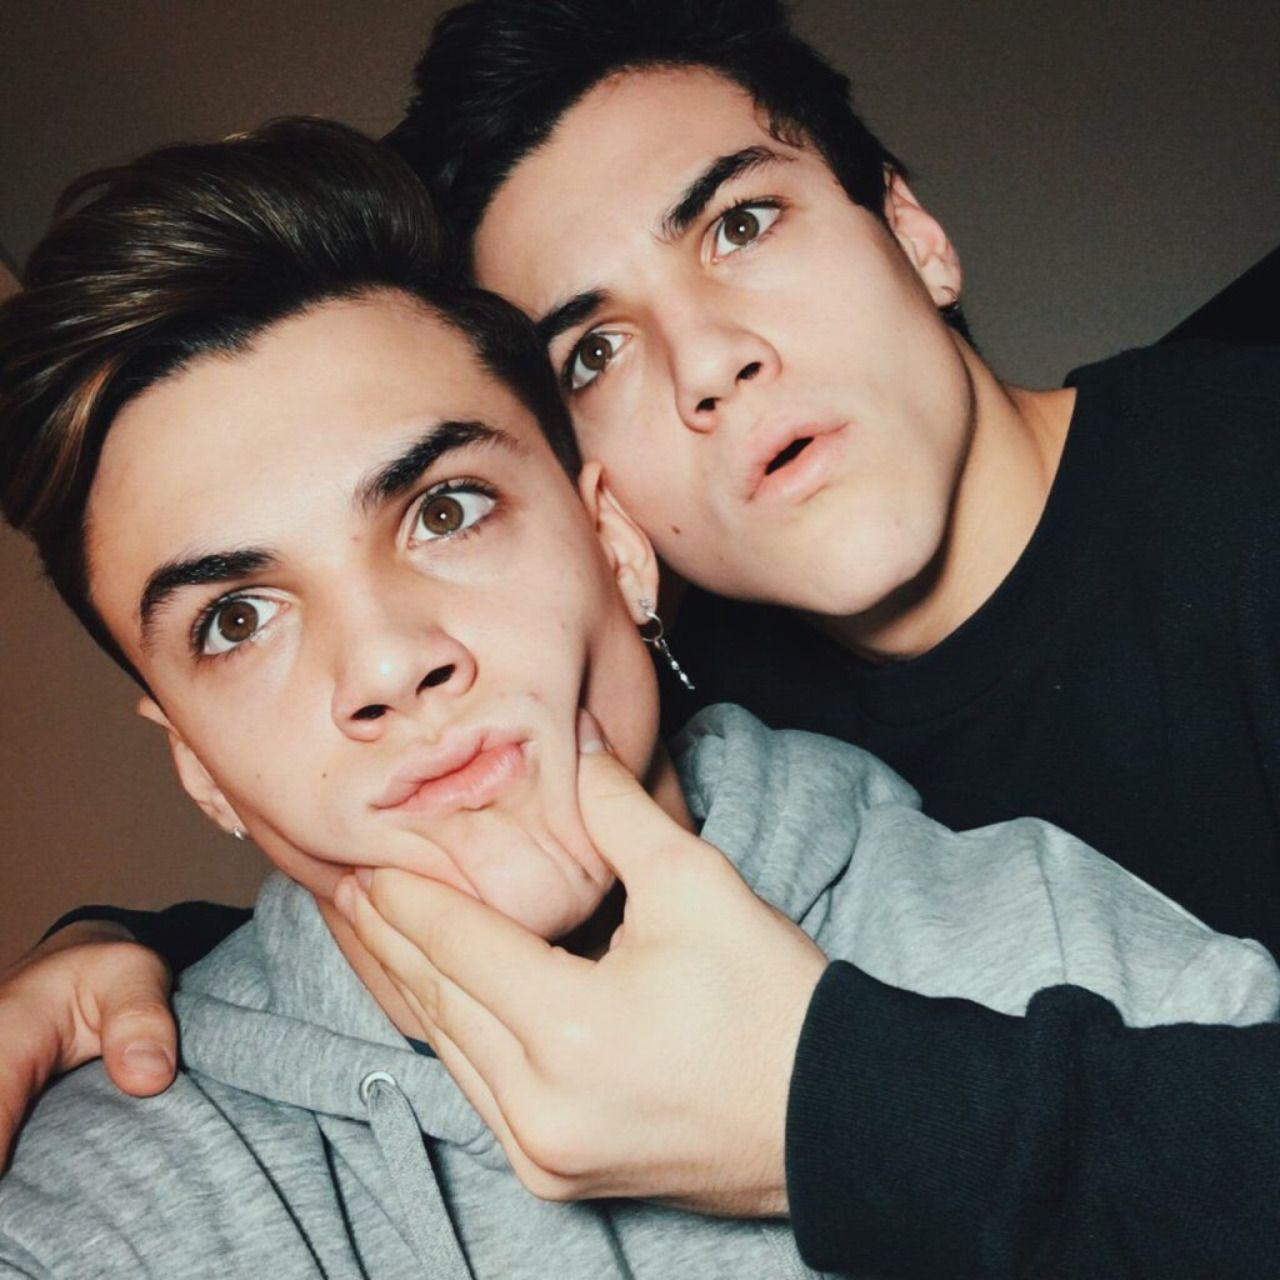 Ethan And Gray Cute Pics Of The Dolan Twins 338494 Hd